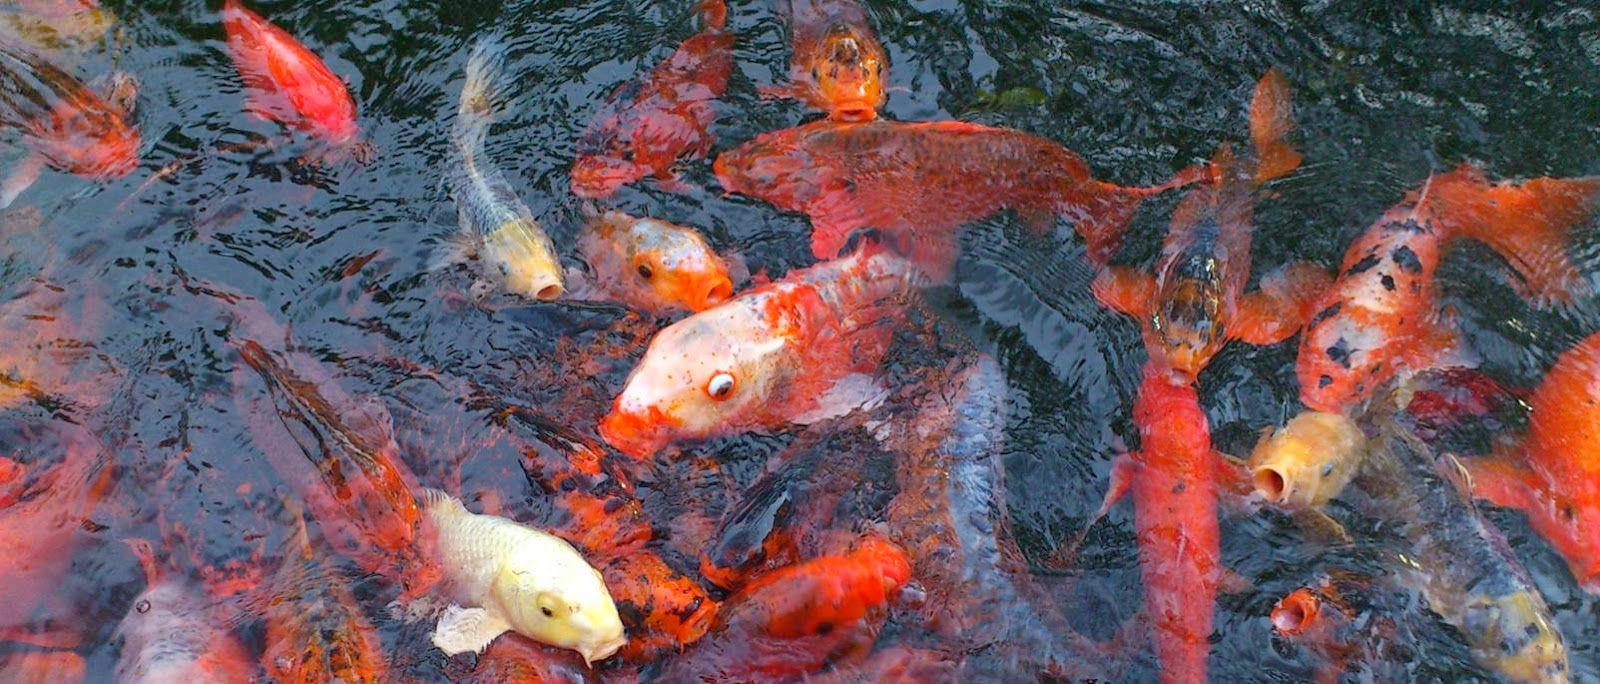 fish pictures. hungry fish